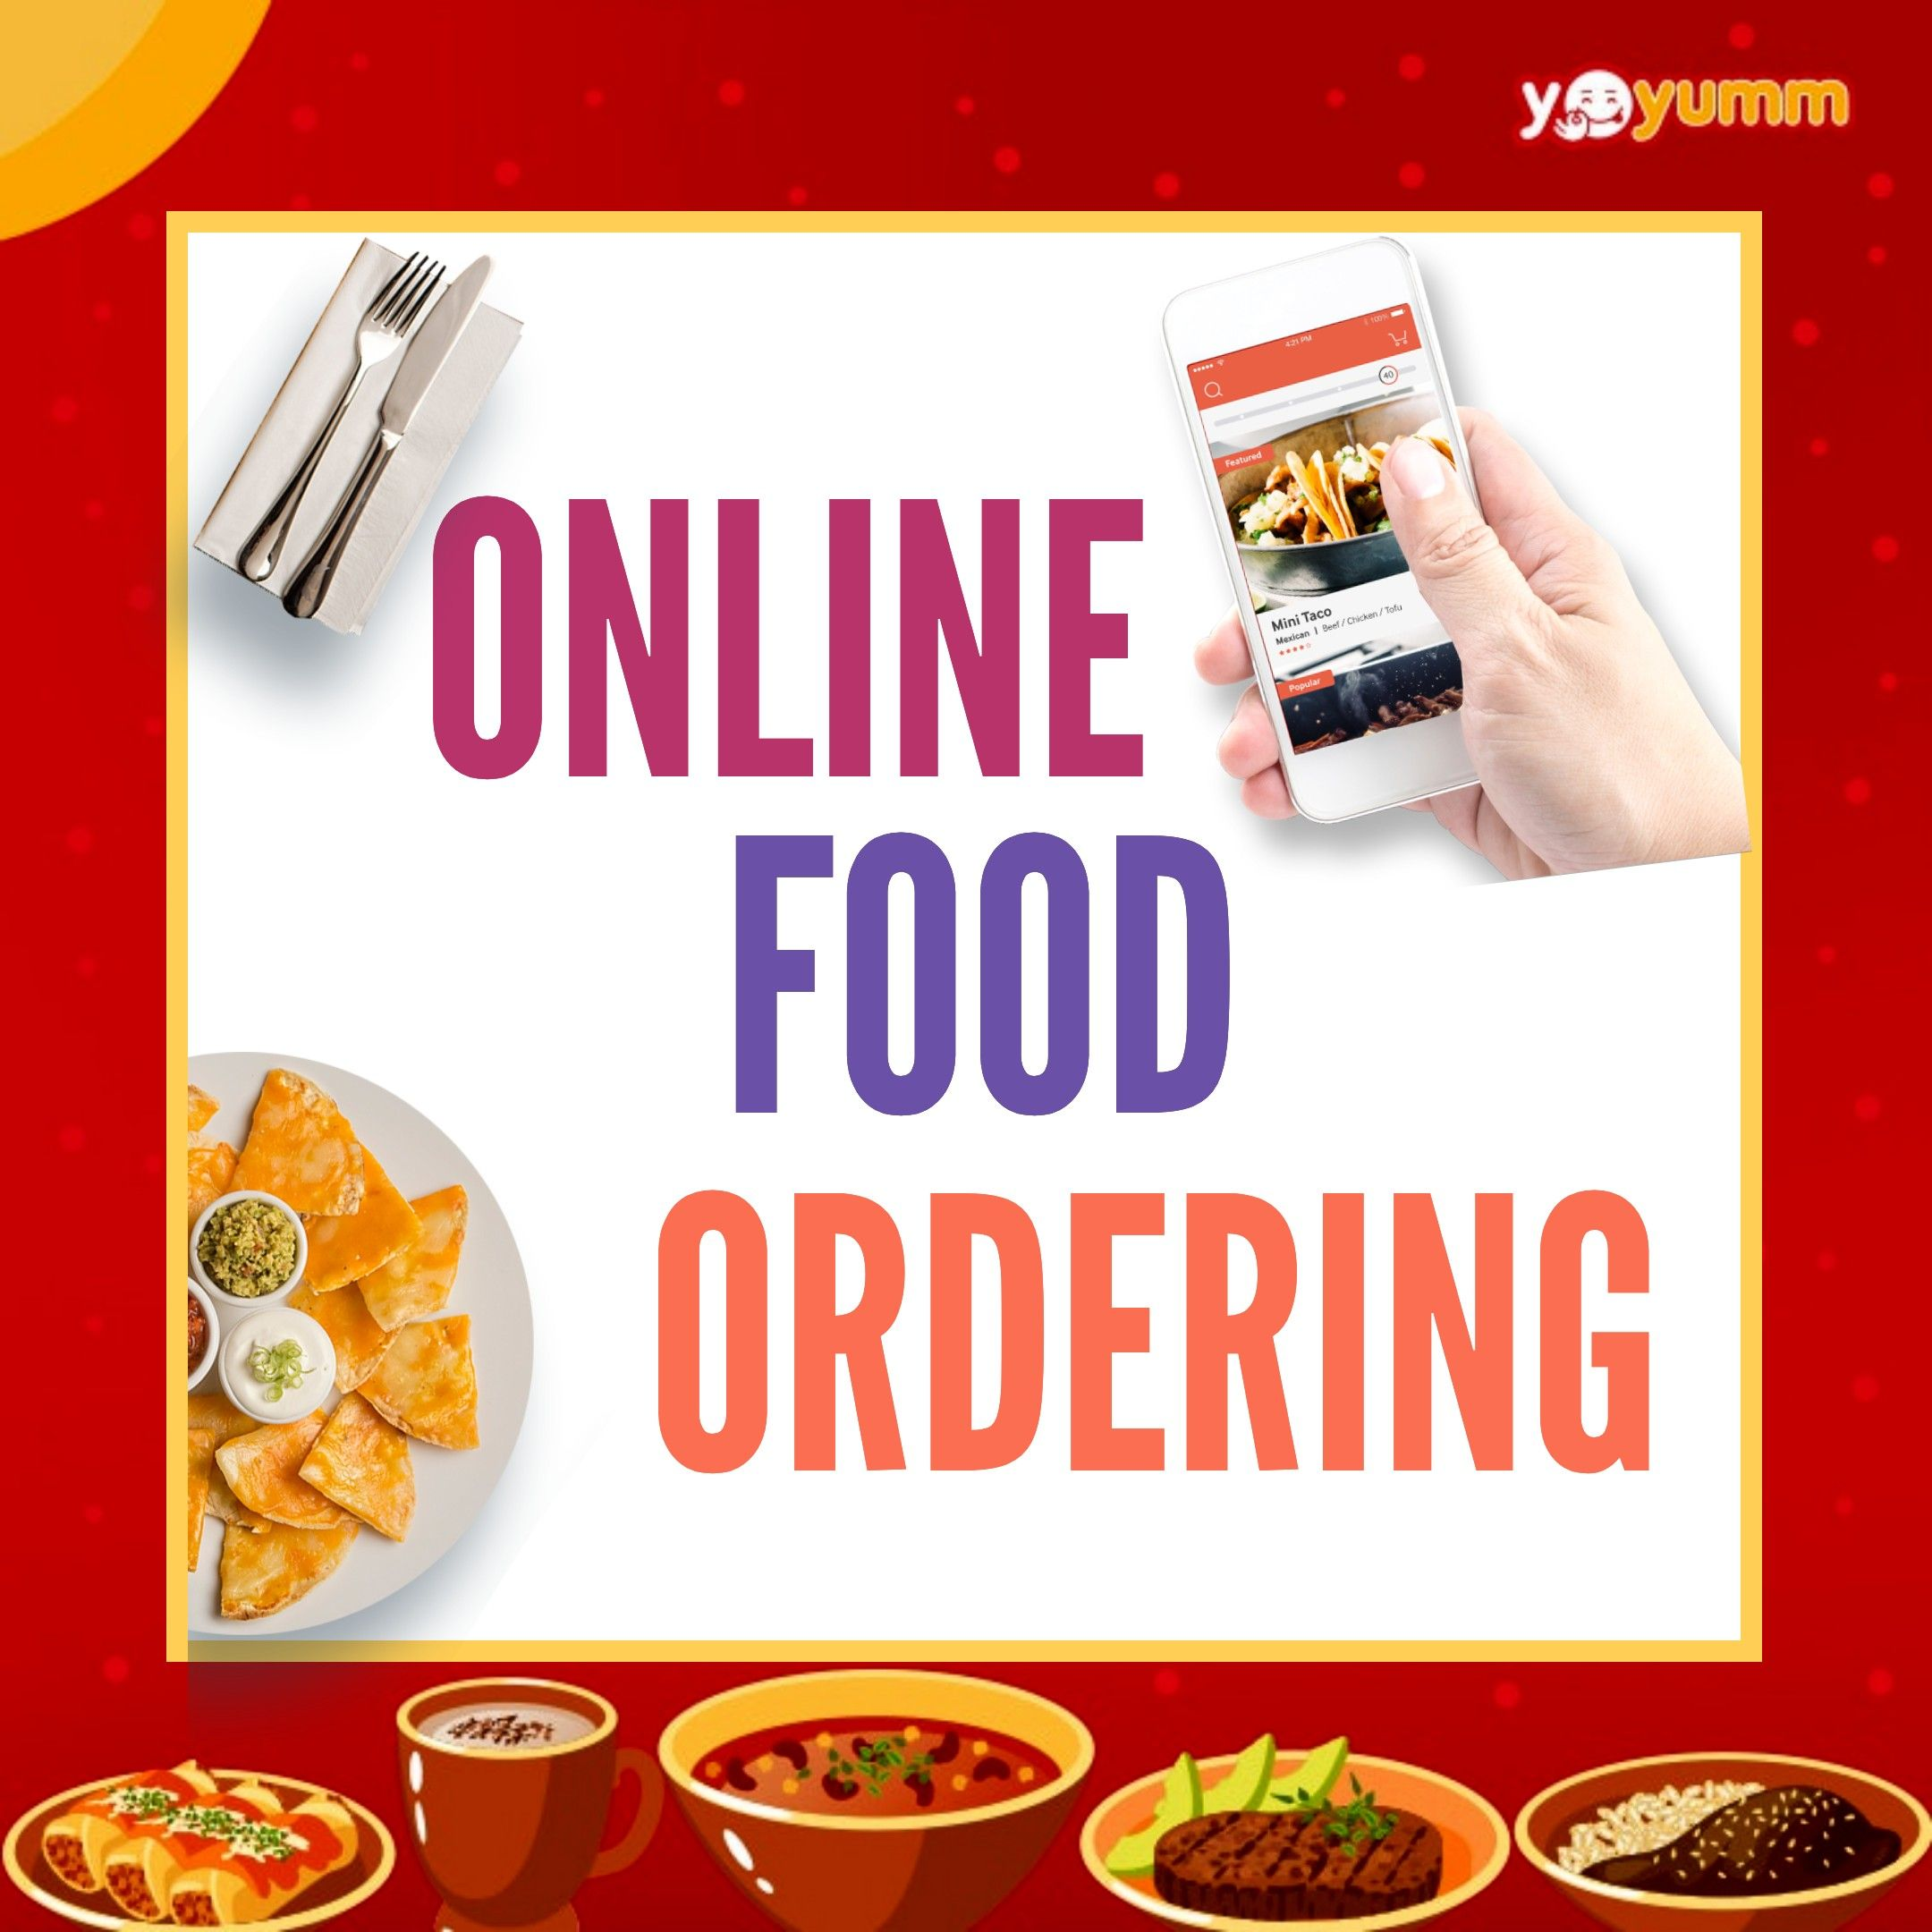 Start your online food ordering website successfully with